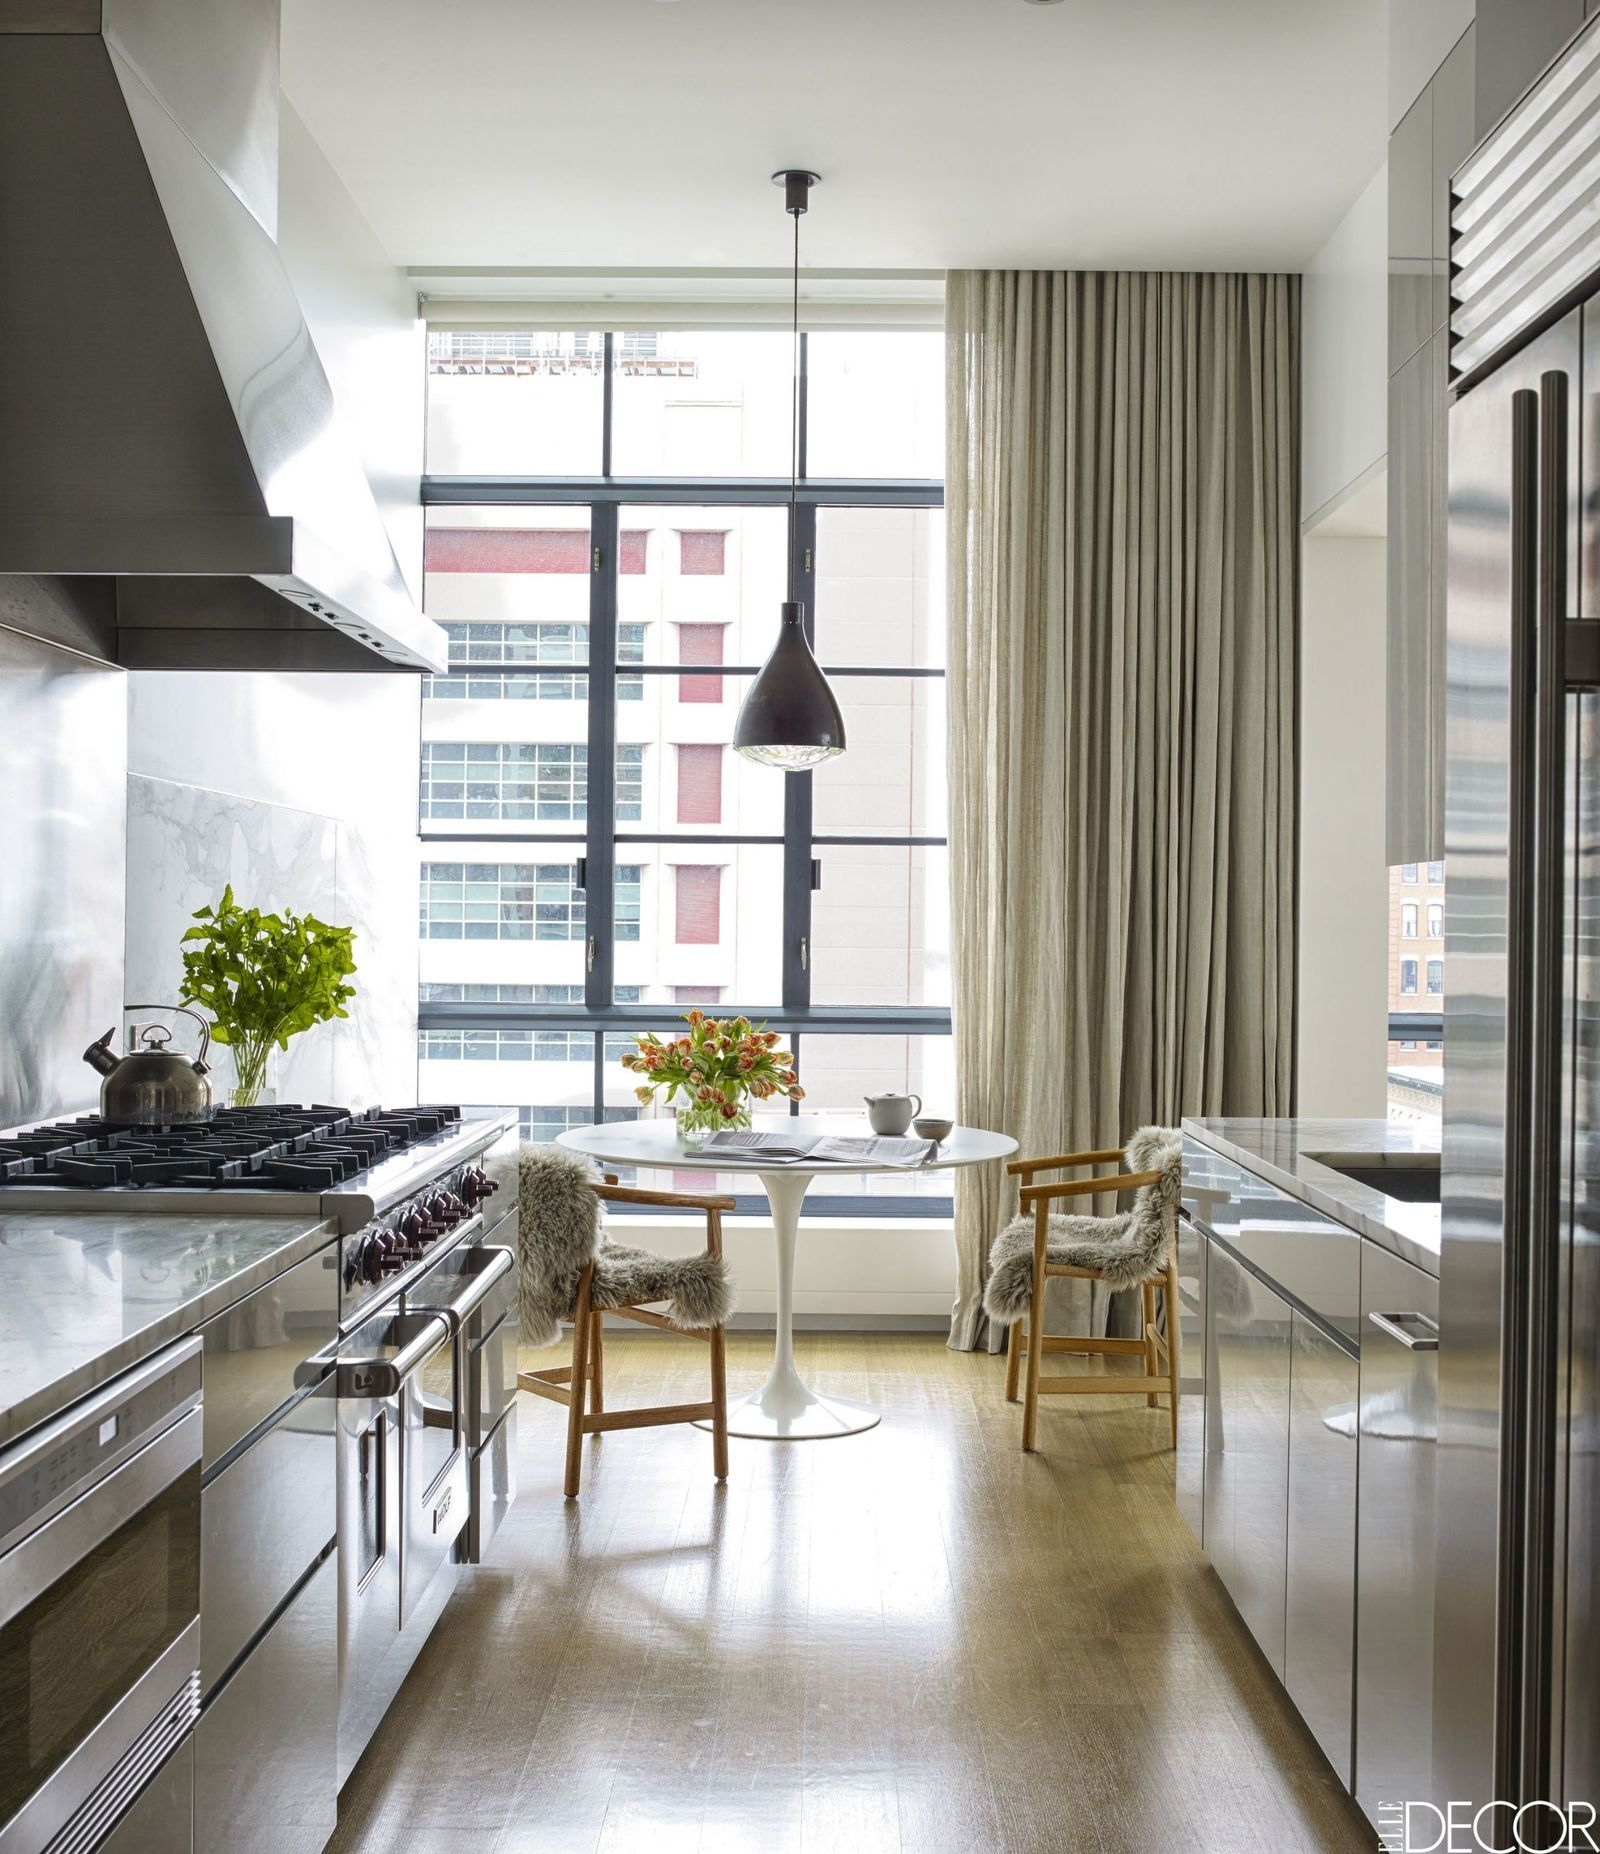 These Minimalist Kitchens Are Anything But Boring | Decoración